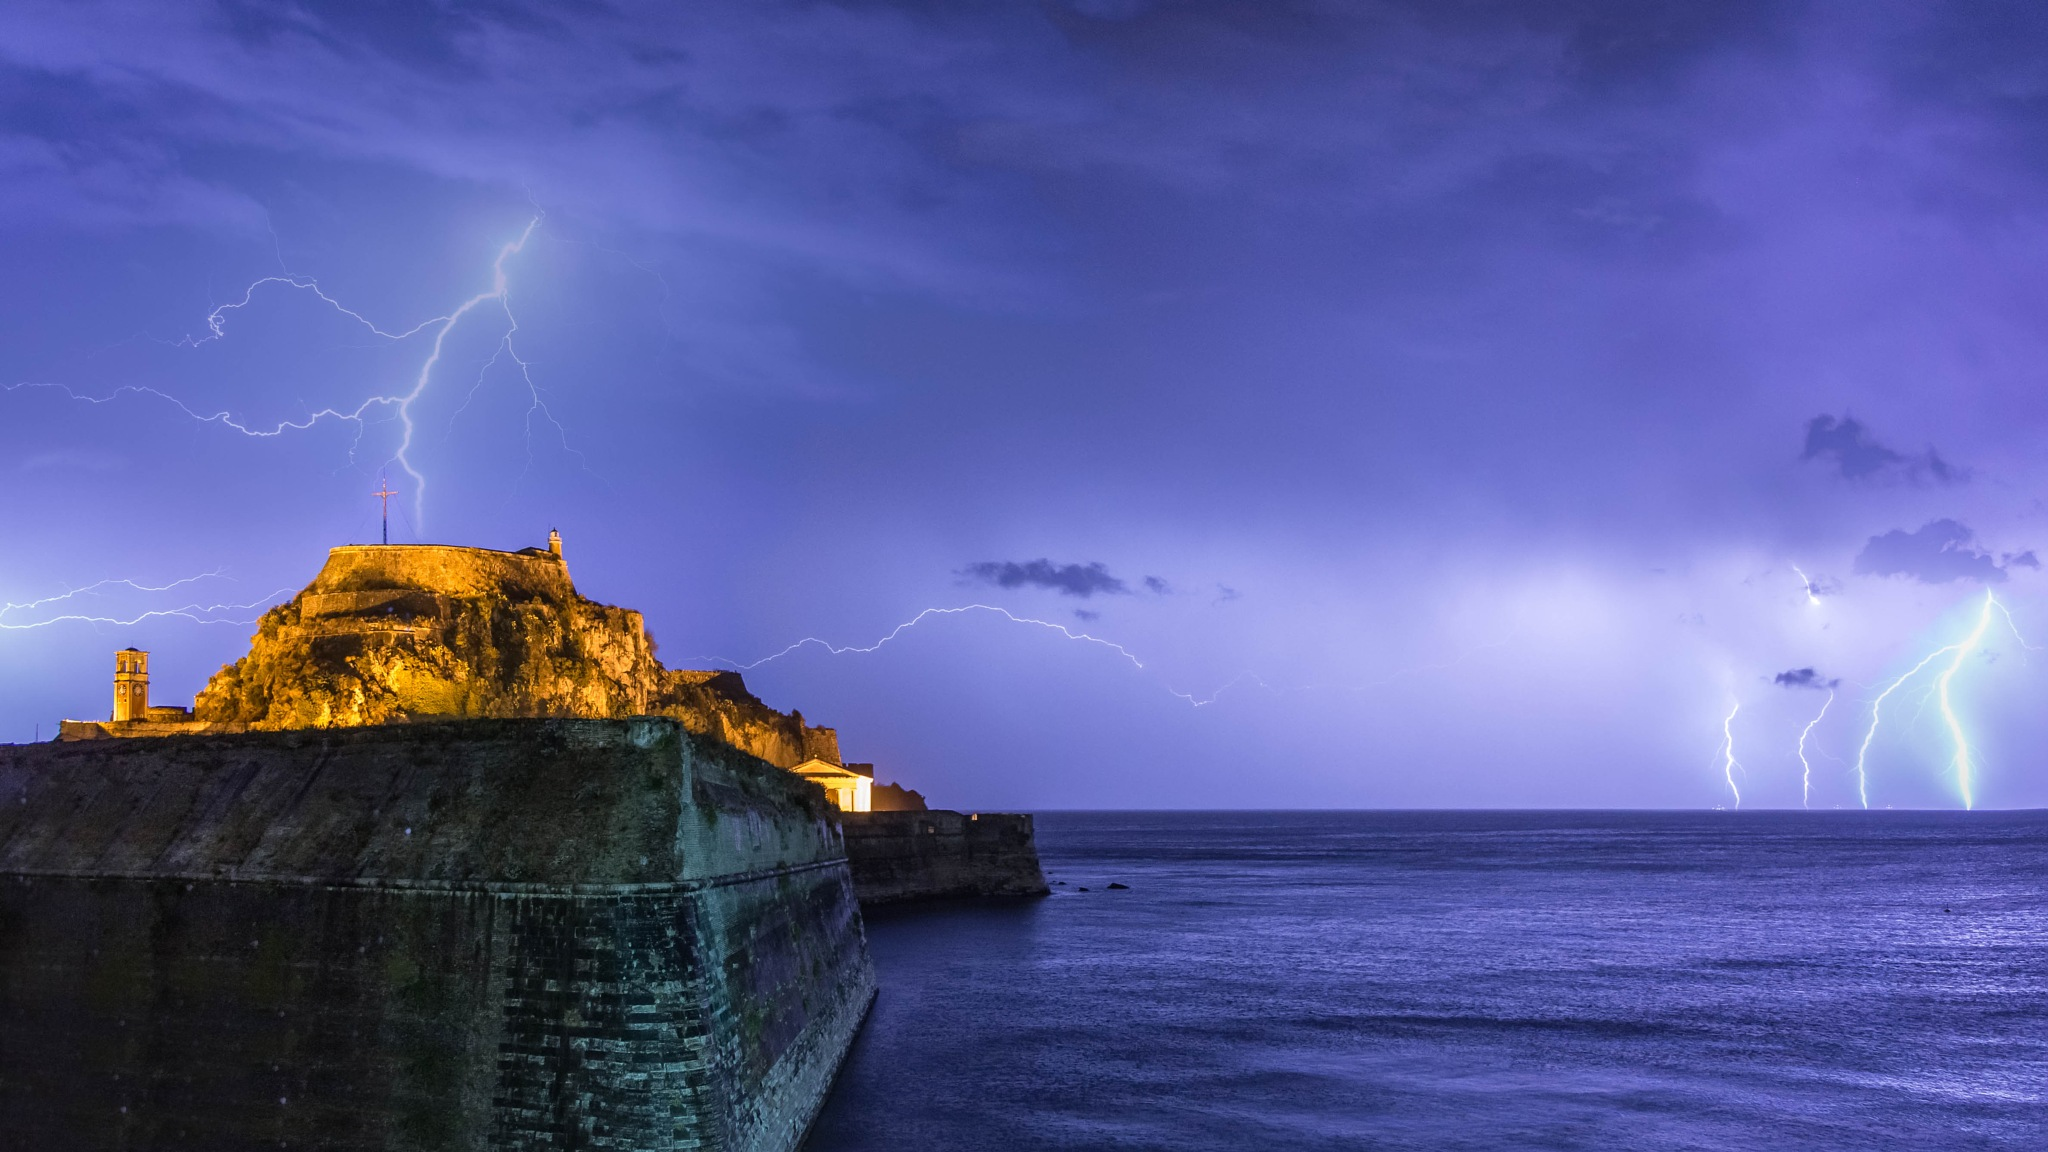 Thunderstorm Lightnings  - Corfu Fortress by Stylianos lavranos